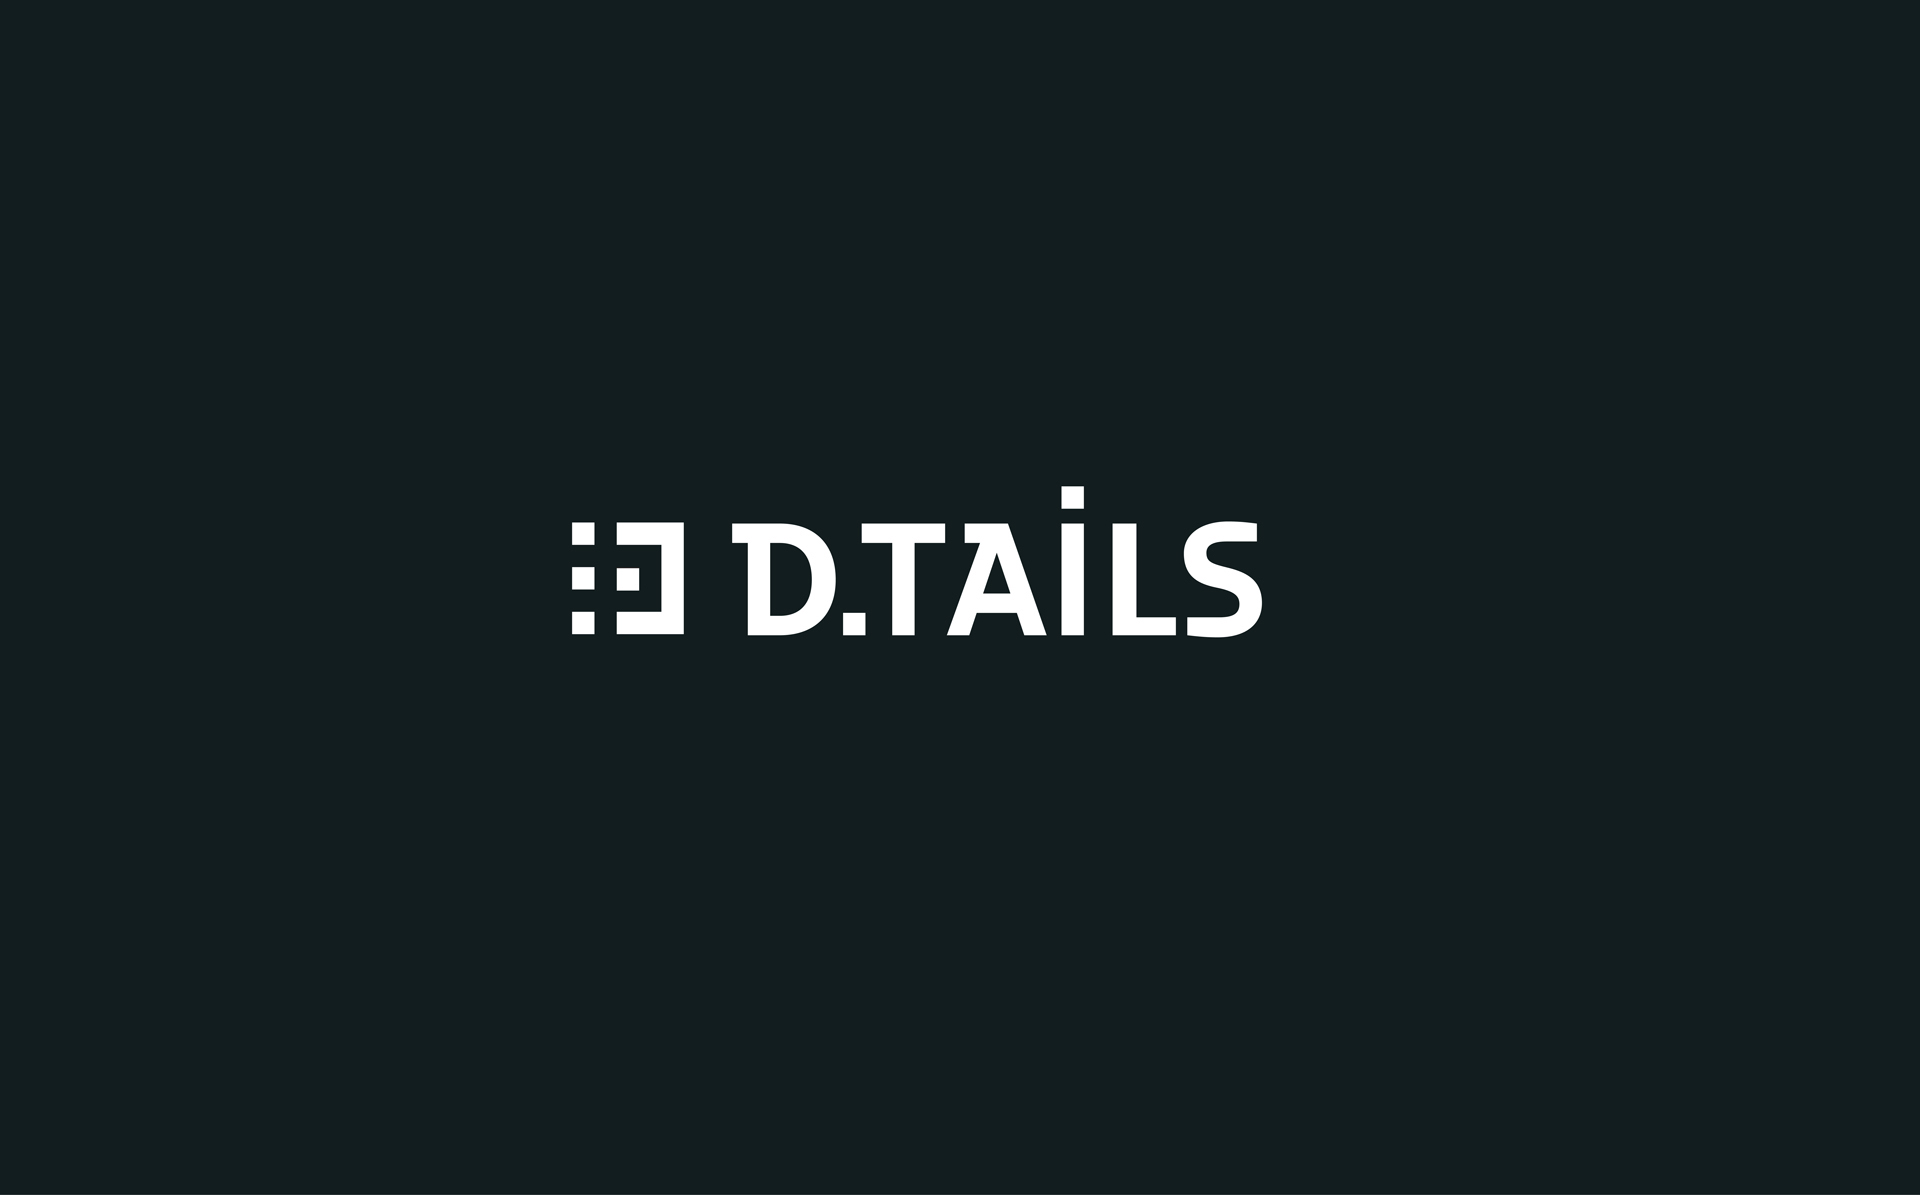 Brand Identity for D.TAILS